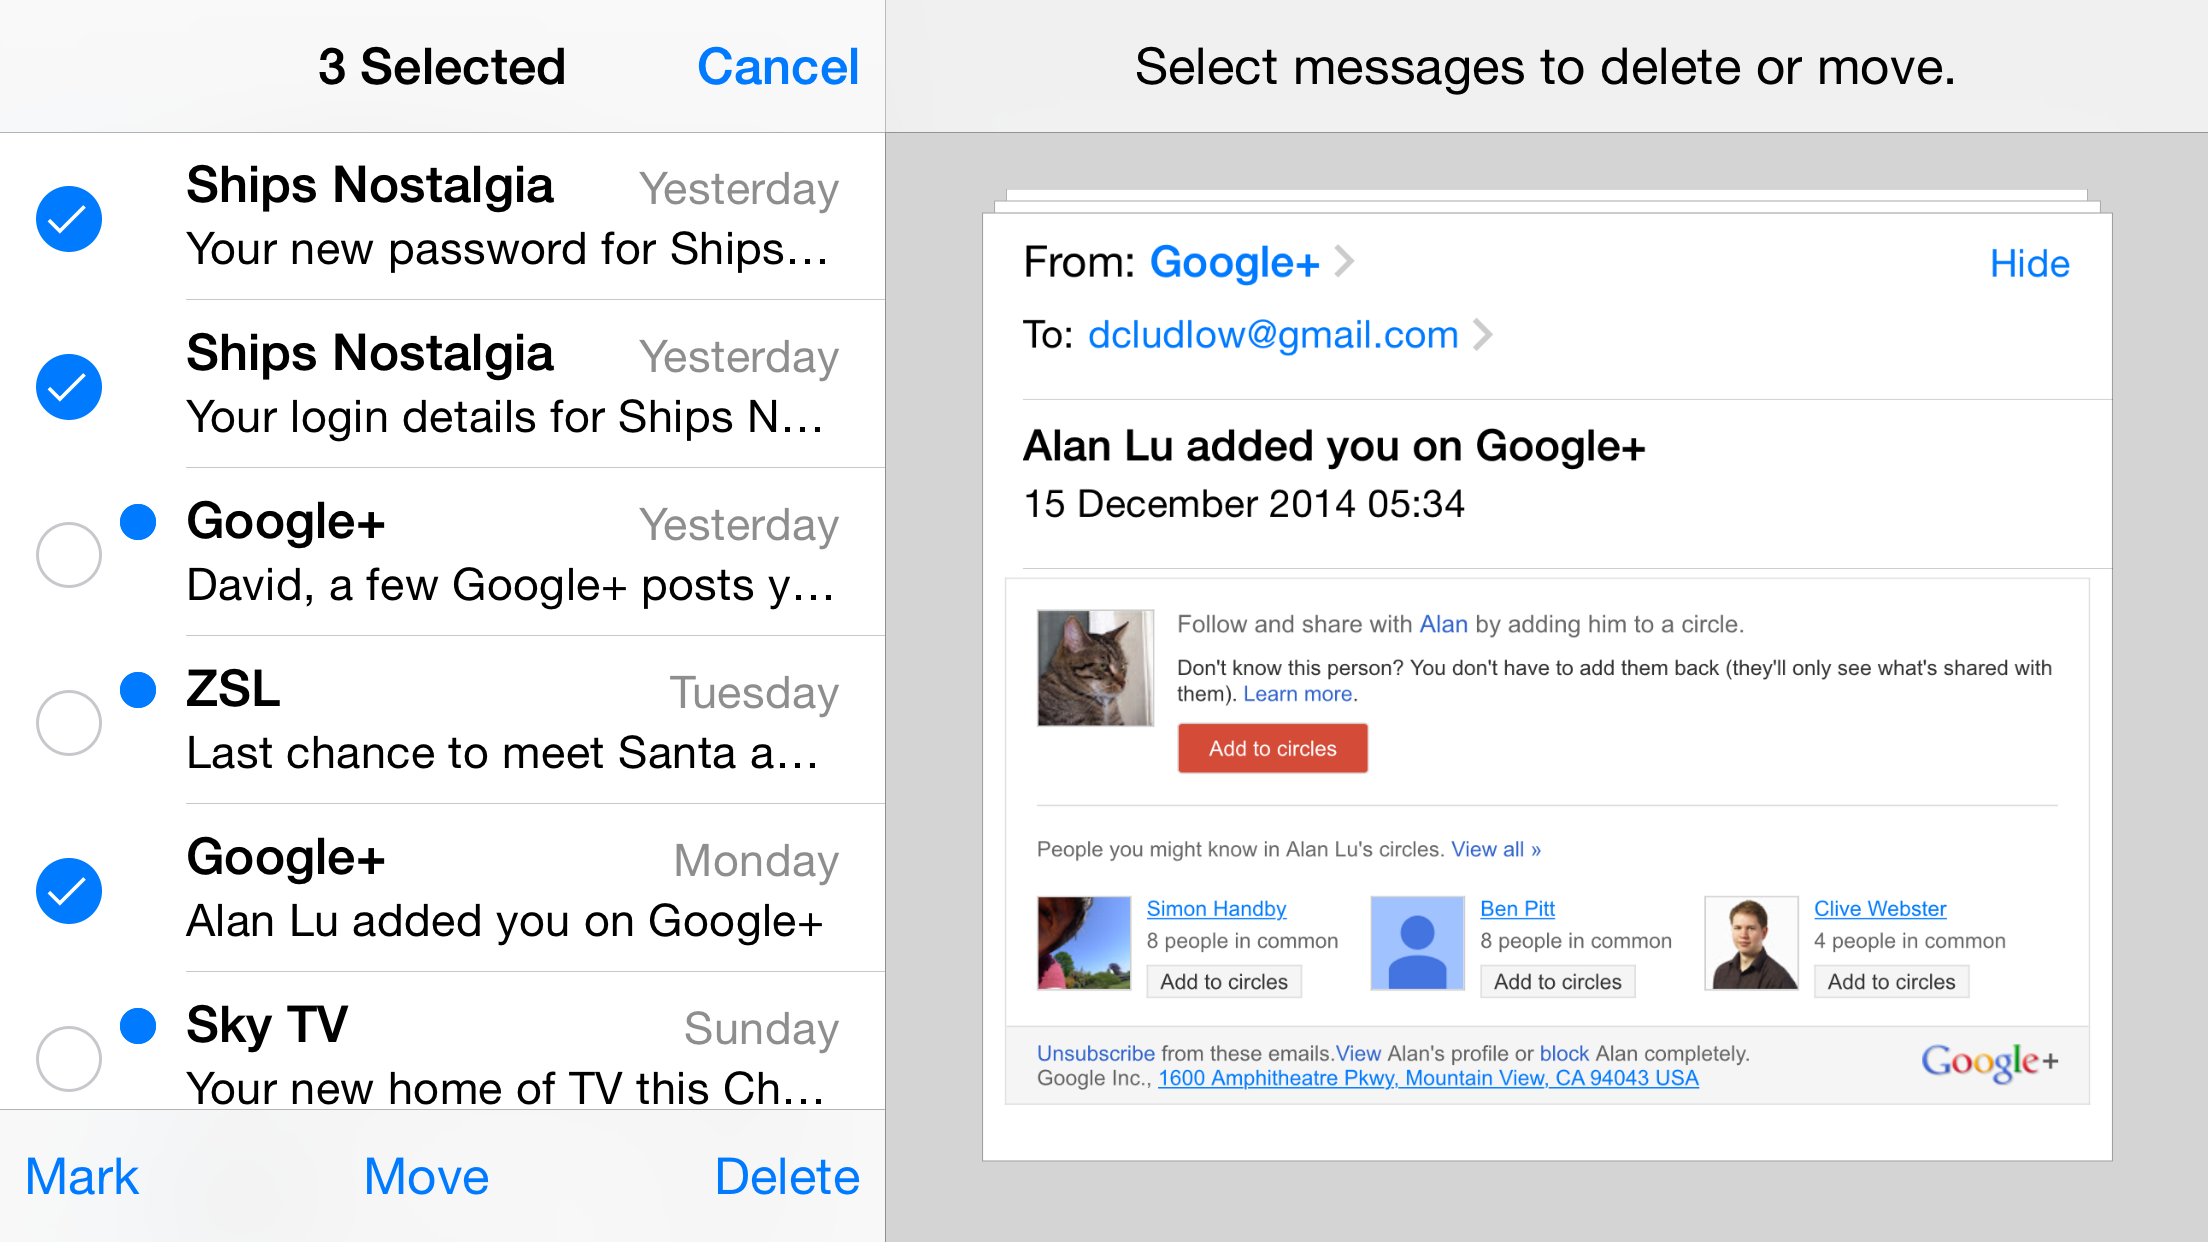 How to delete multiple messages in gmail app